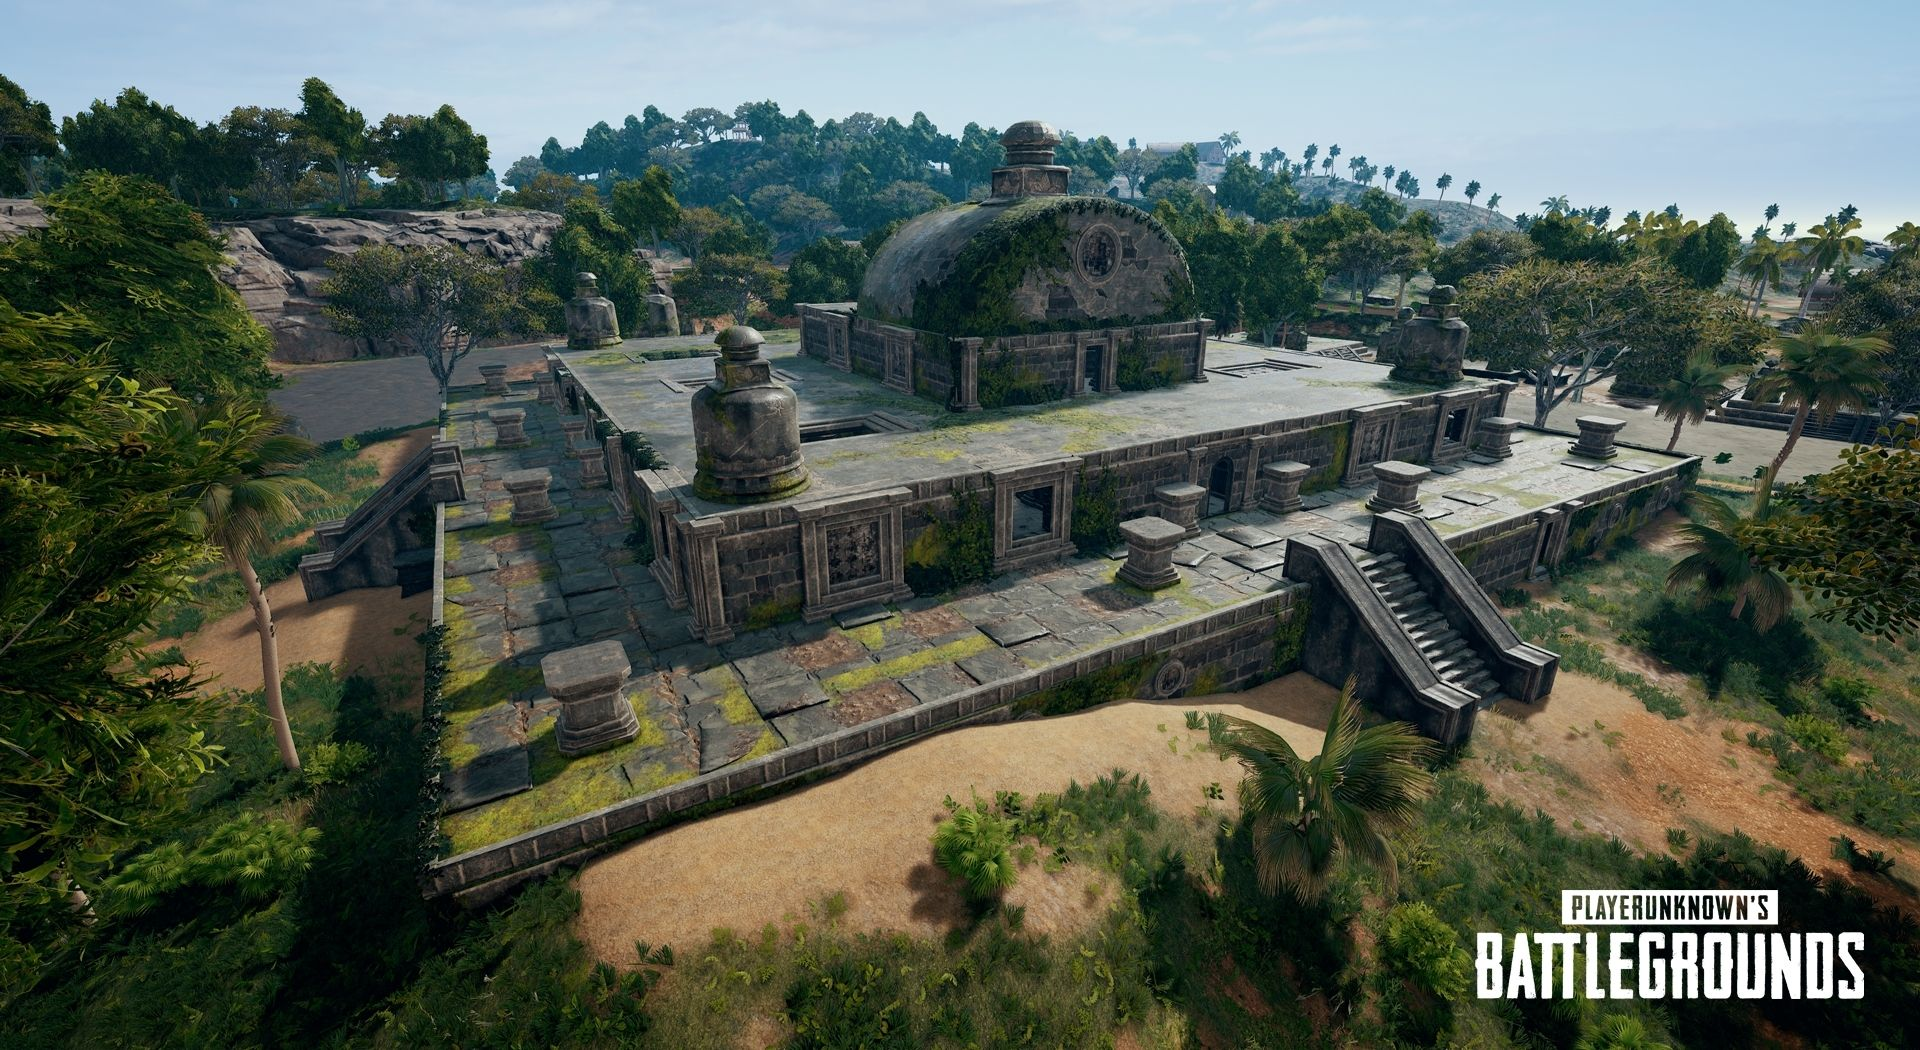 PUBG 10 Xbox Update Released With Sanhok Amp War Mode